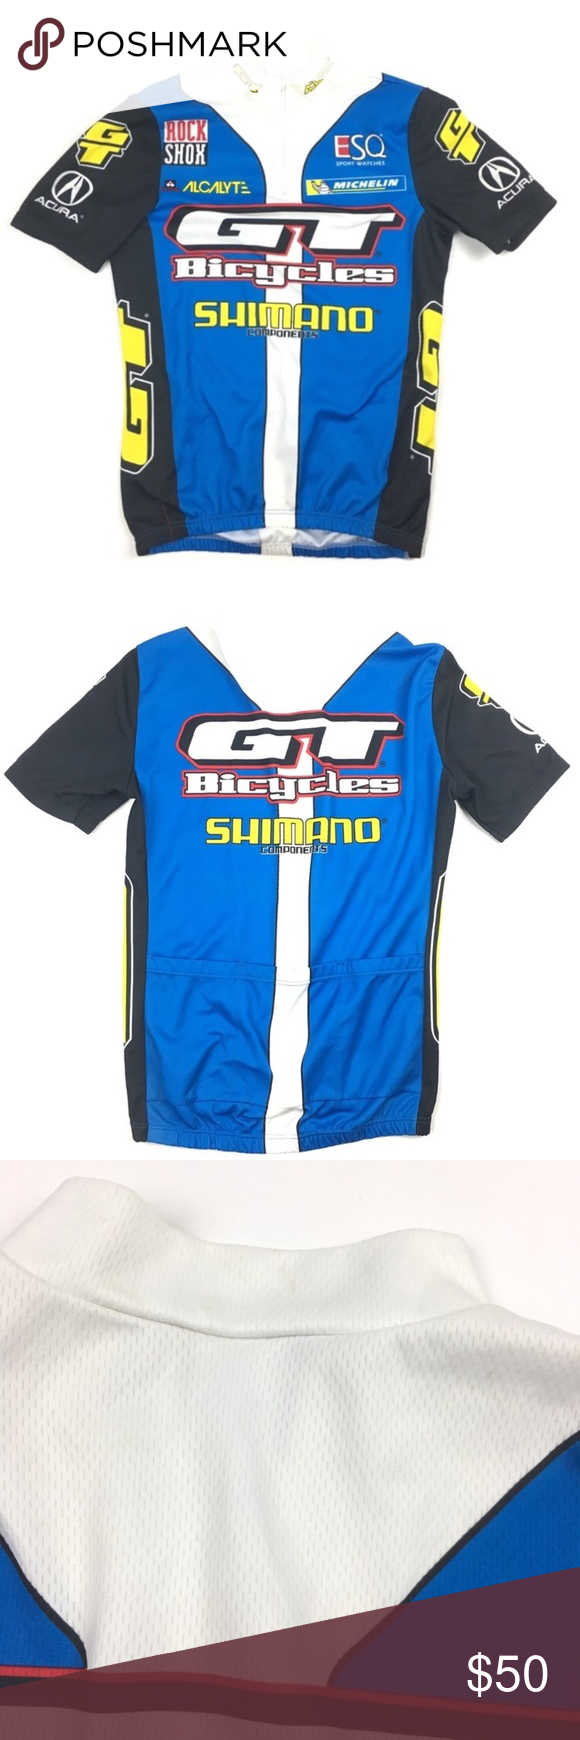 GT Shimano Cycling Jersey De Marchi Acura Bicycle Jersey is in good  pre-owned condition b7d1f4519